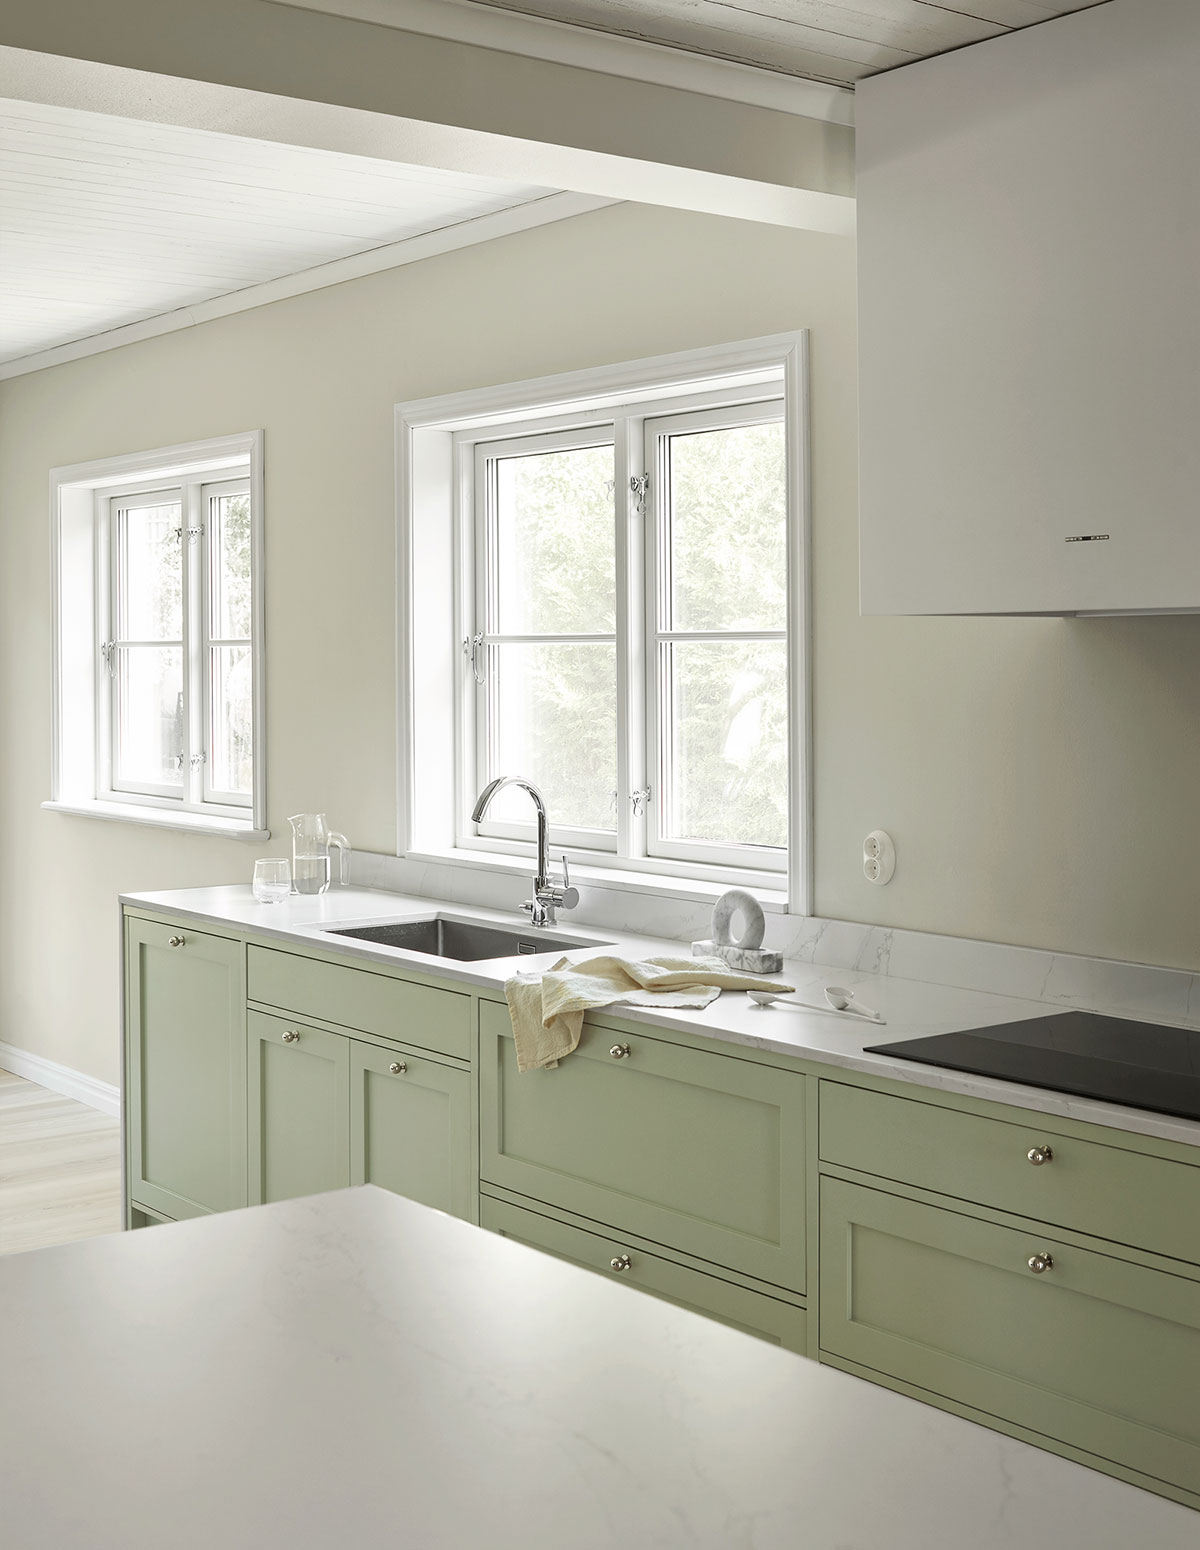 Shaker kitchen in light green in Scandinavian design with silestone countertop for founder of Stylein